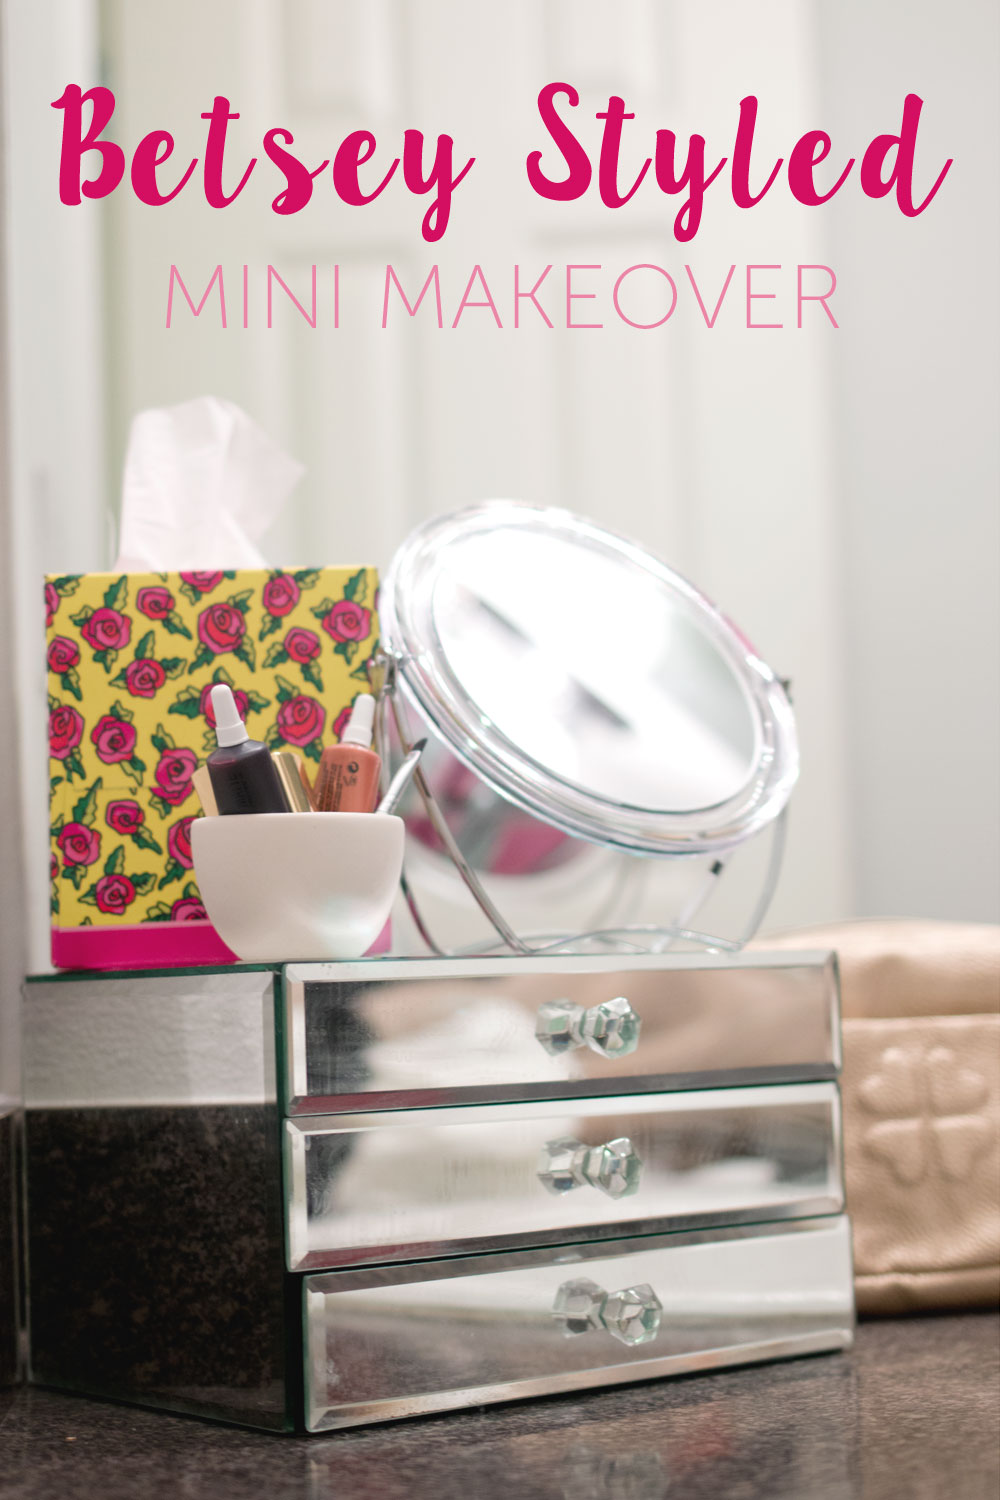 Kleenex Betsey Styled Mini Bathroom Makeover #KleenexStyle #shop / hellorigby seattle lifestyle & fashion blog